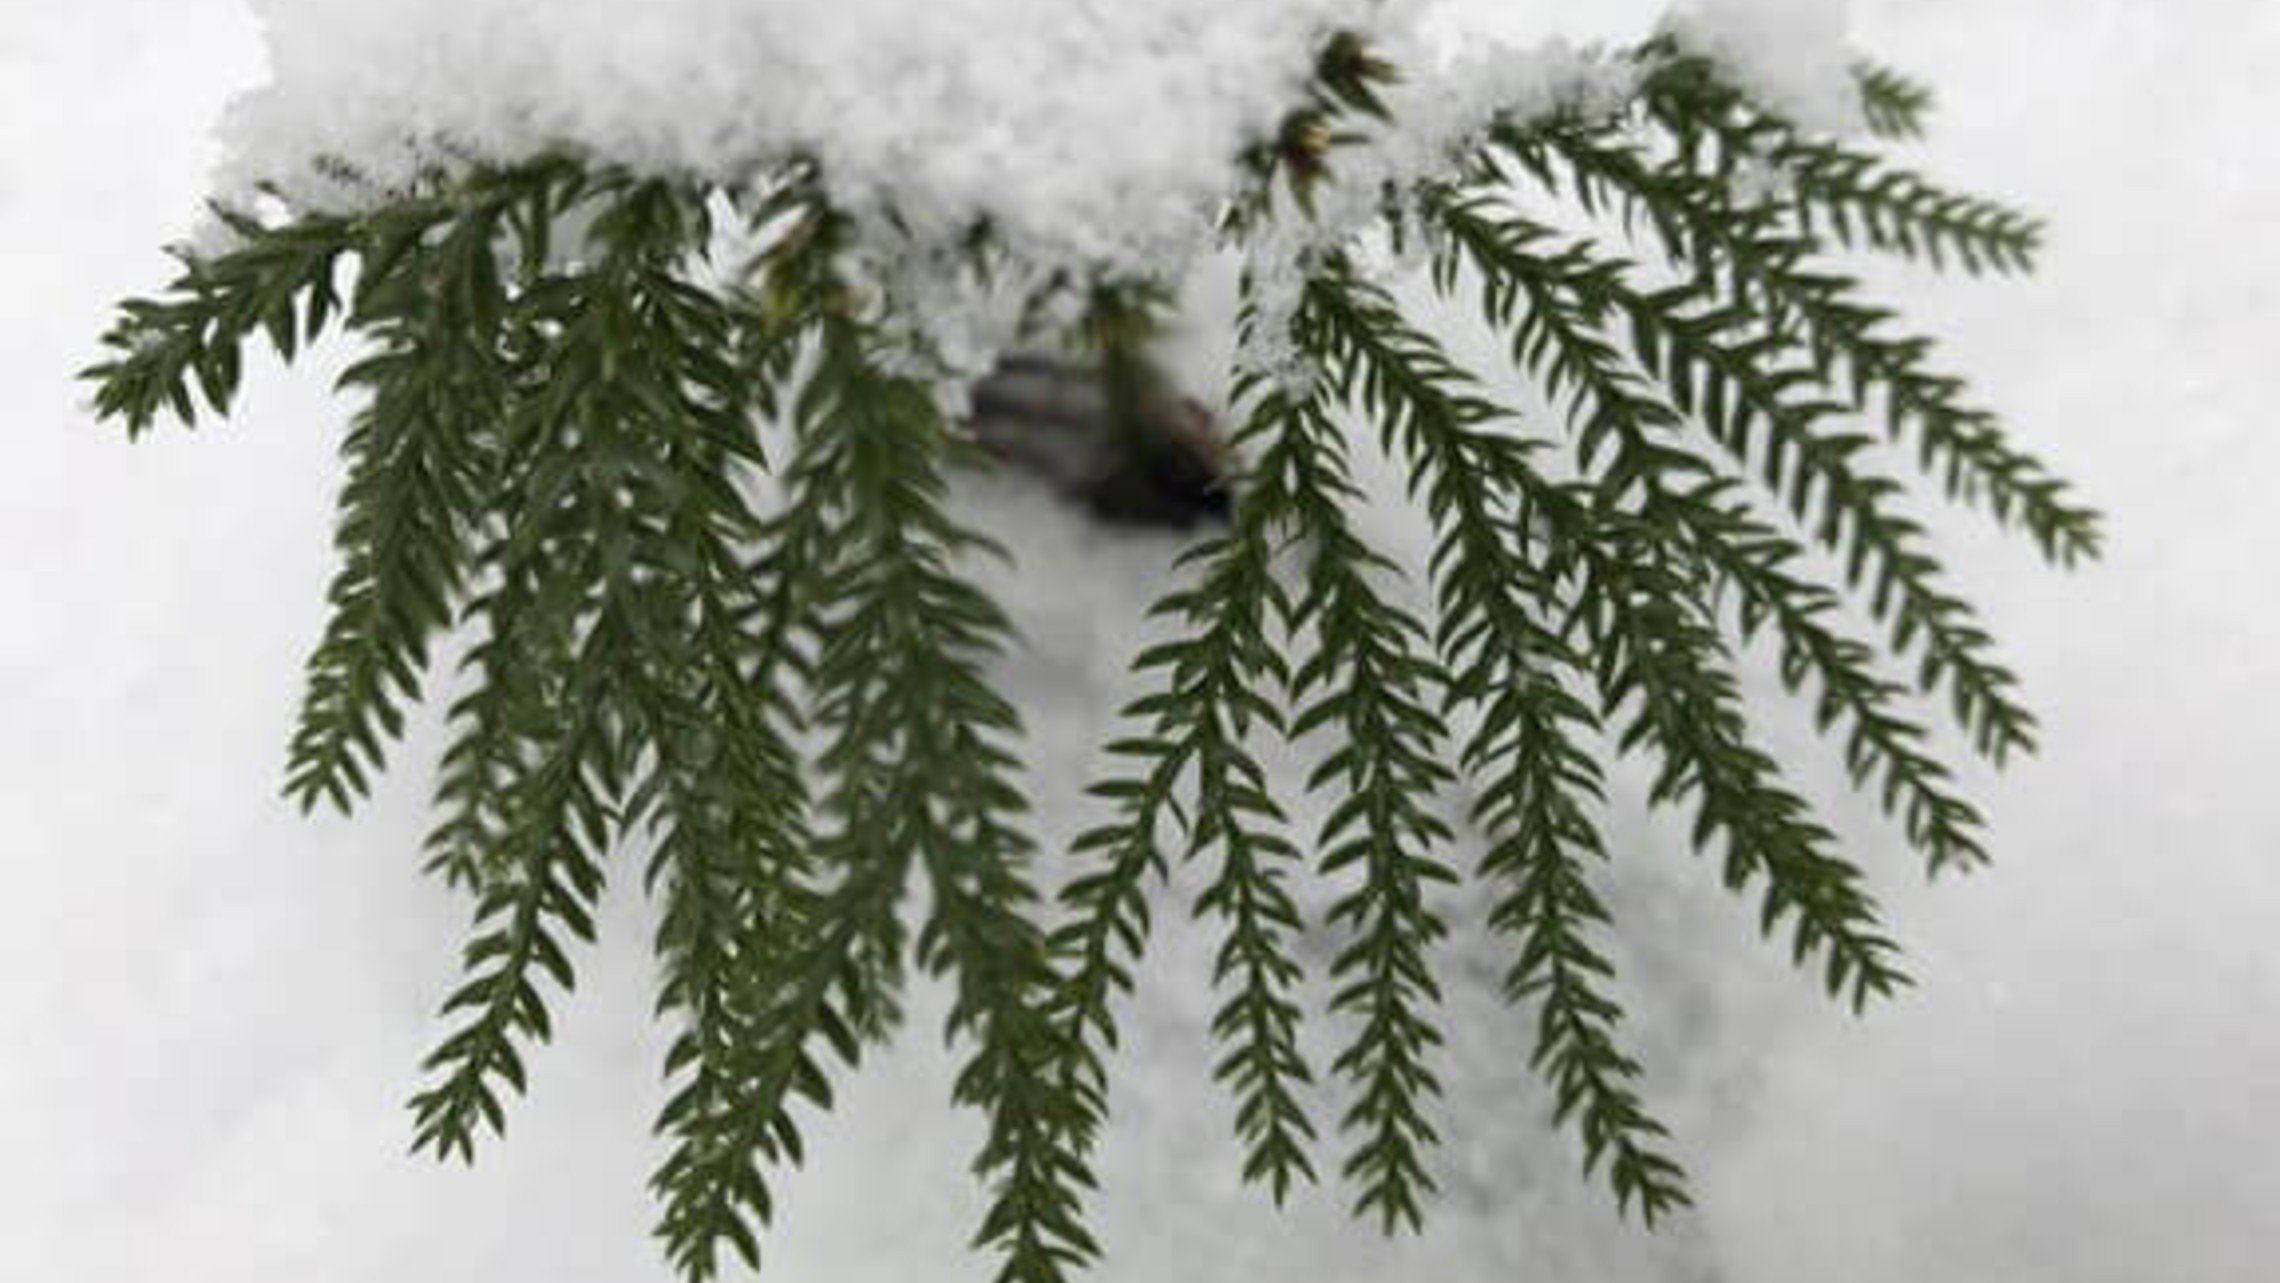 Evergreen branch covered in deep snow